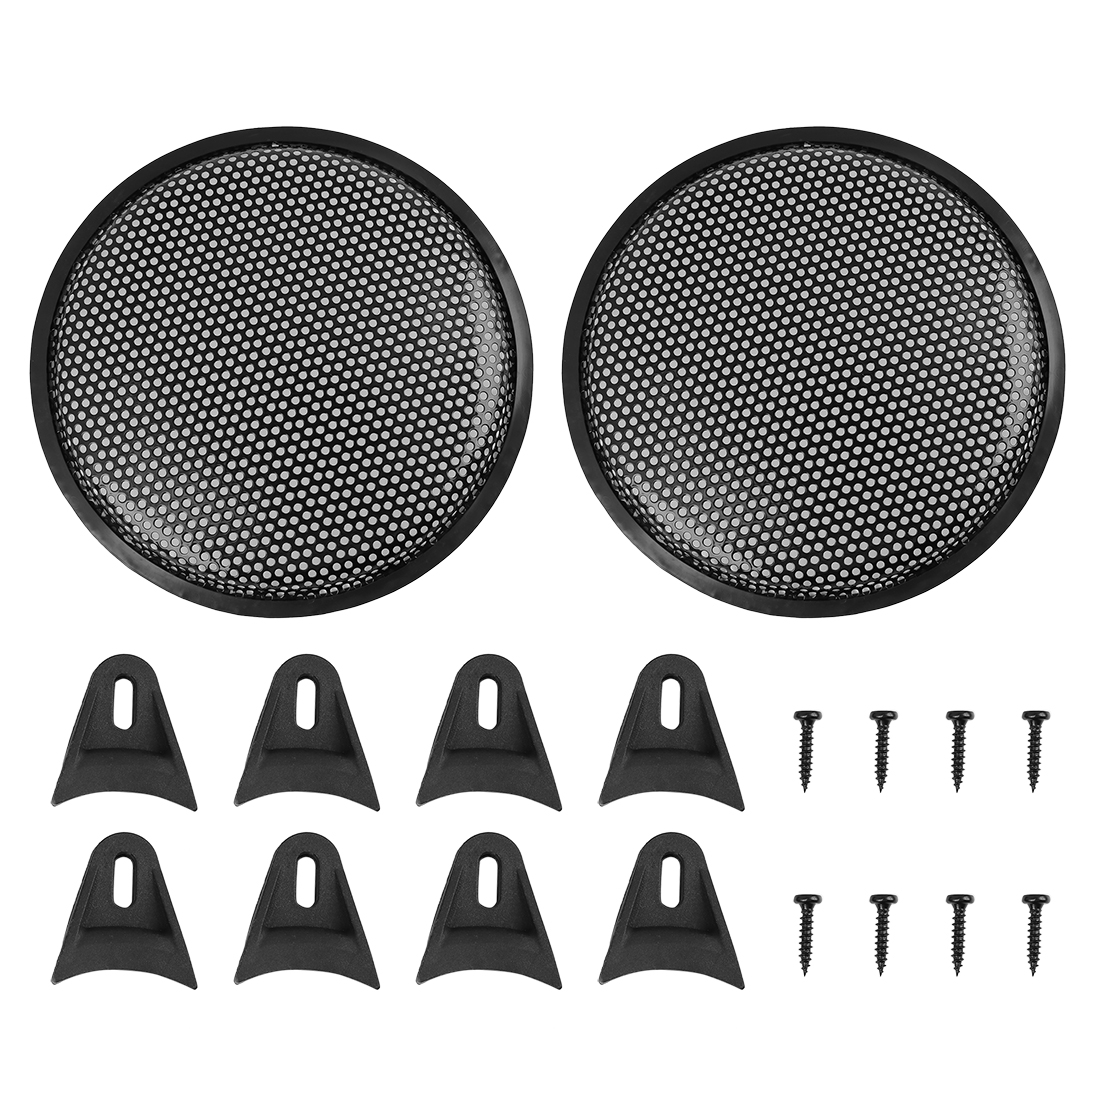 uxcell 10 Inches 2pcs Grill Cover MeshProtector Car Speaker Cover Woofer Subwoofer Grill For Honda Nissan